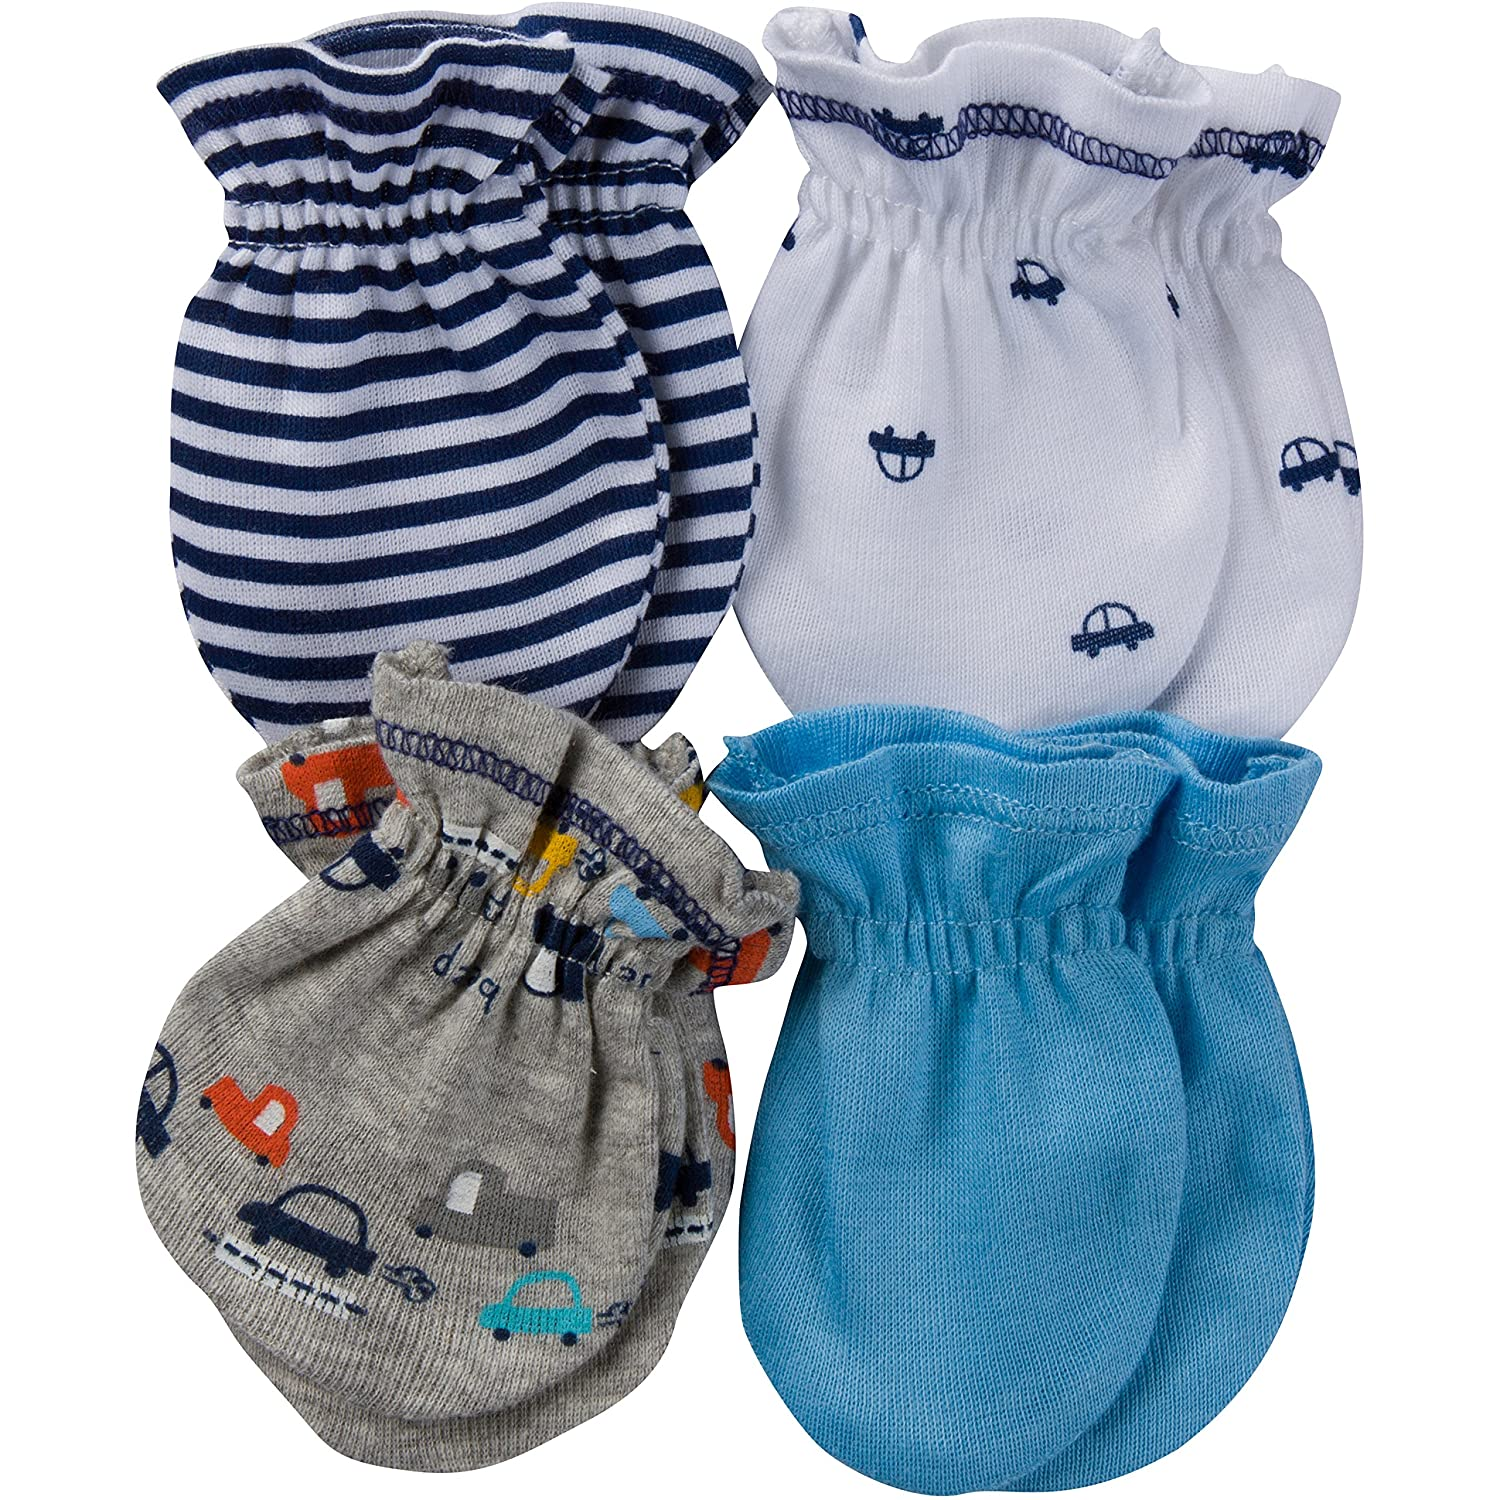 Gerber Baby Boys' 4-Pair Mittens Little Athlete 0-3 Months Gerber Children' s Apparel 98420416AB1803I